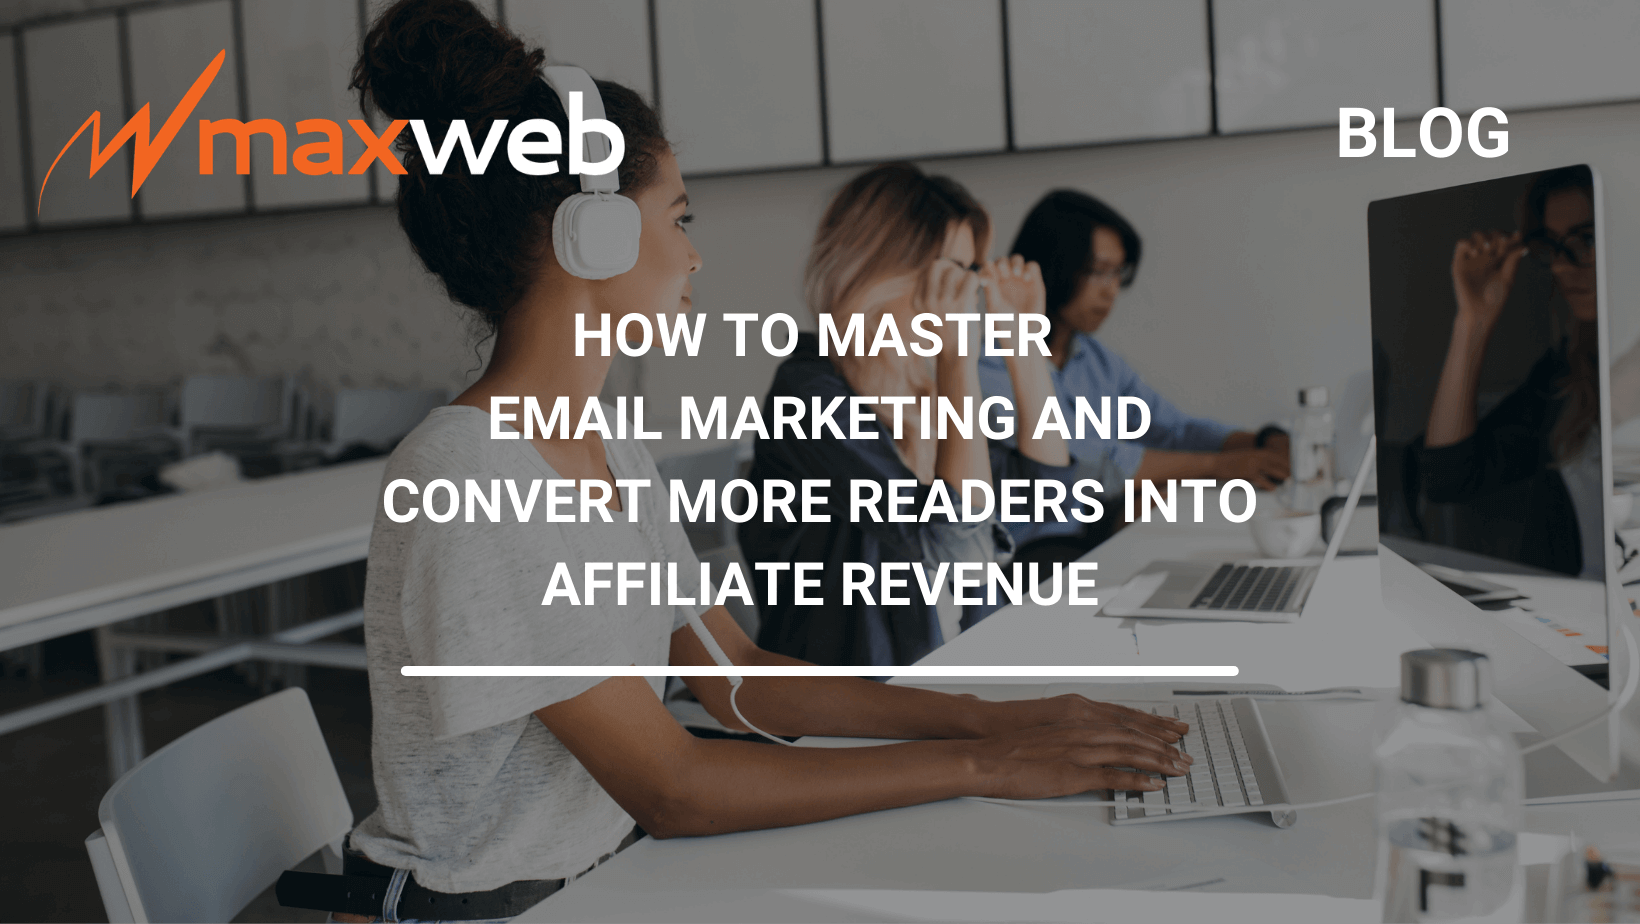 How To Master Email Marketing And Convert More Readers Into Affiliate Revenue